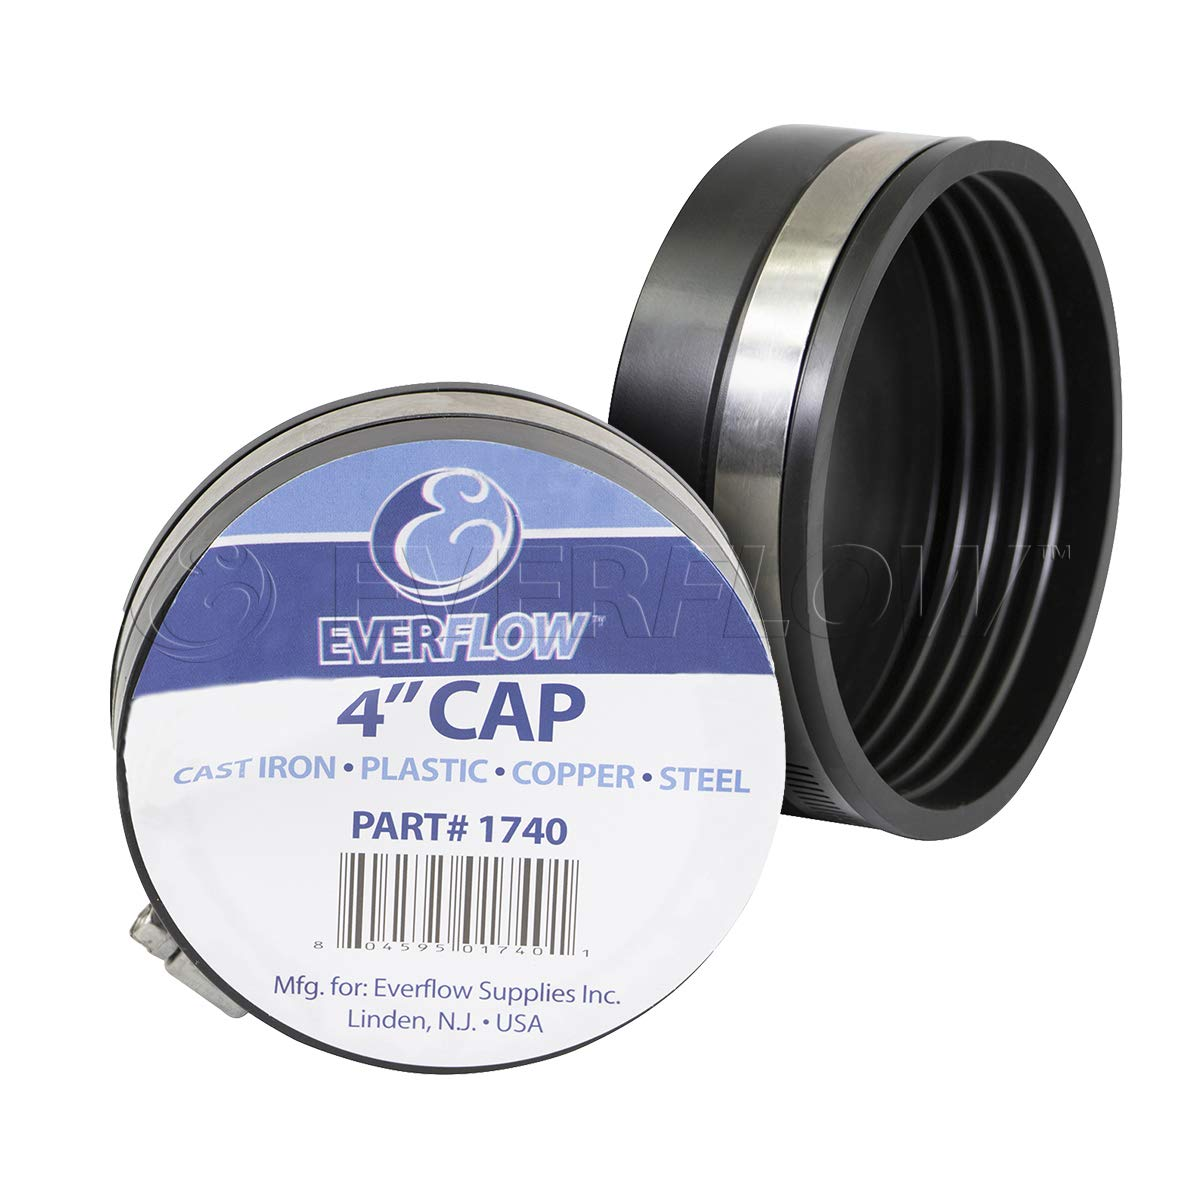 Everflow pack of 4 EVERCONNECT 1740x4 Flexible Pvc Pipe Cap with Stainless Steel Clamps 4 Inch Black